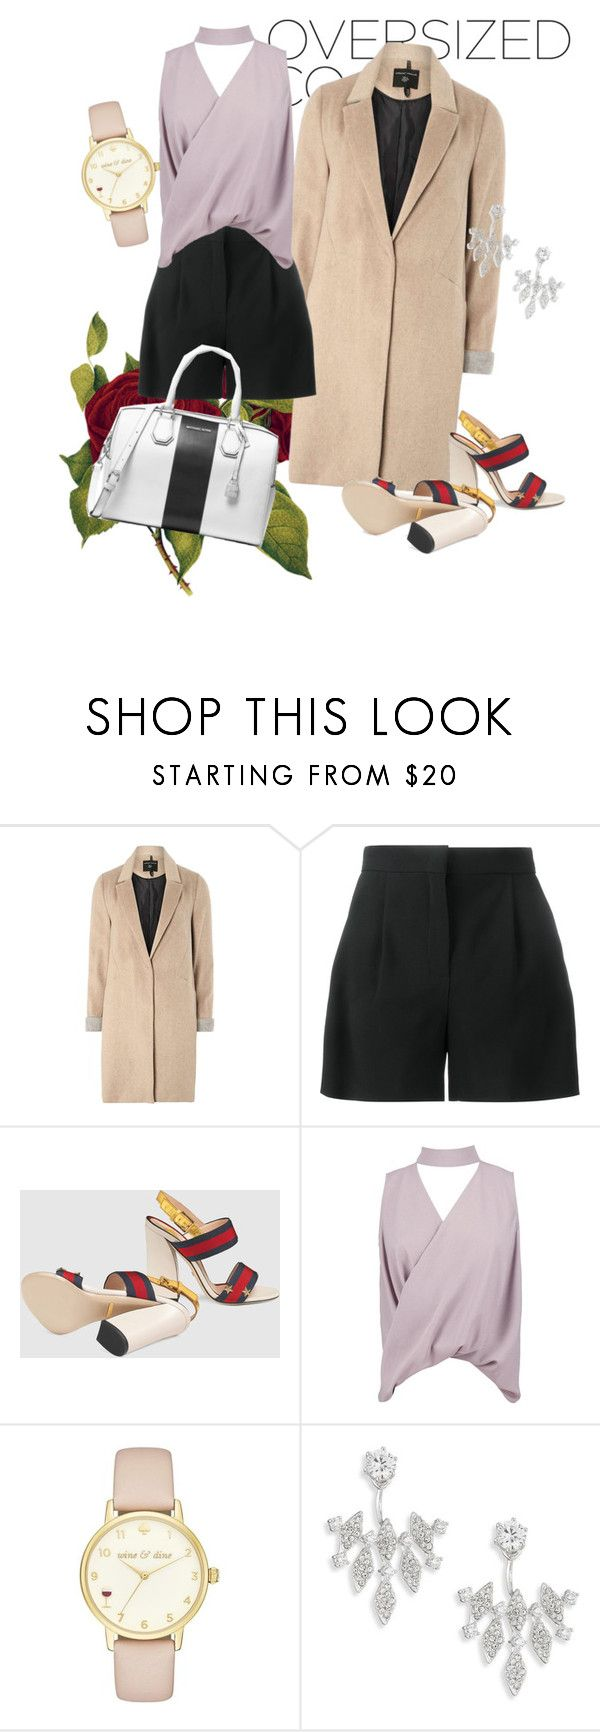 """outfit#90"" by alifia-fae on Polyvore featuring mel, Alberta Ferretti, Gucci, Boohoo, Kate Spade, Adriana Orsini and MICHAEL Michael Kors"